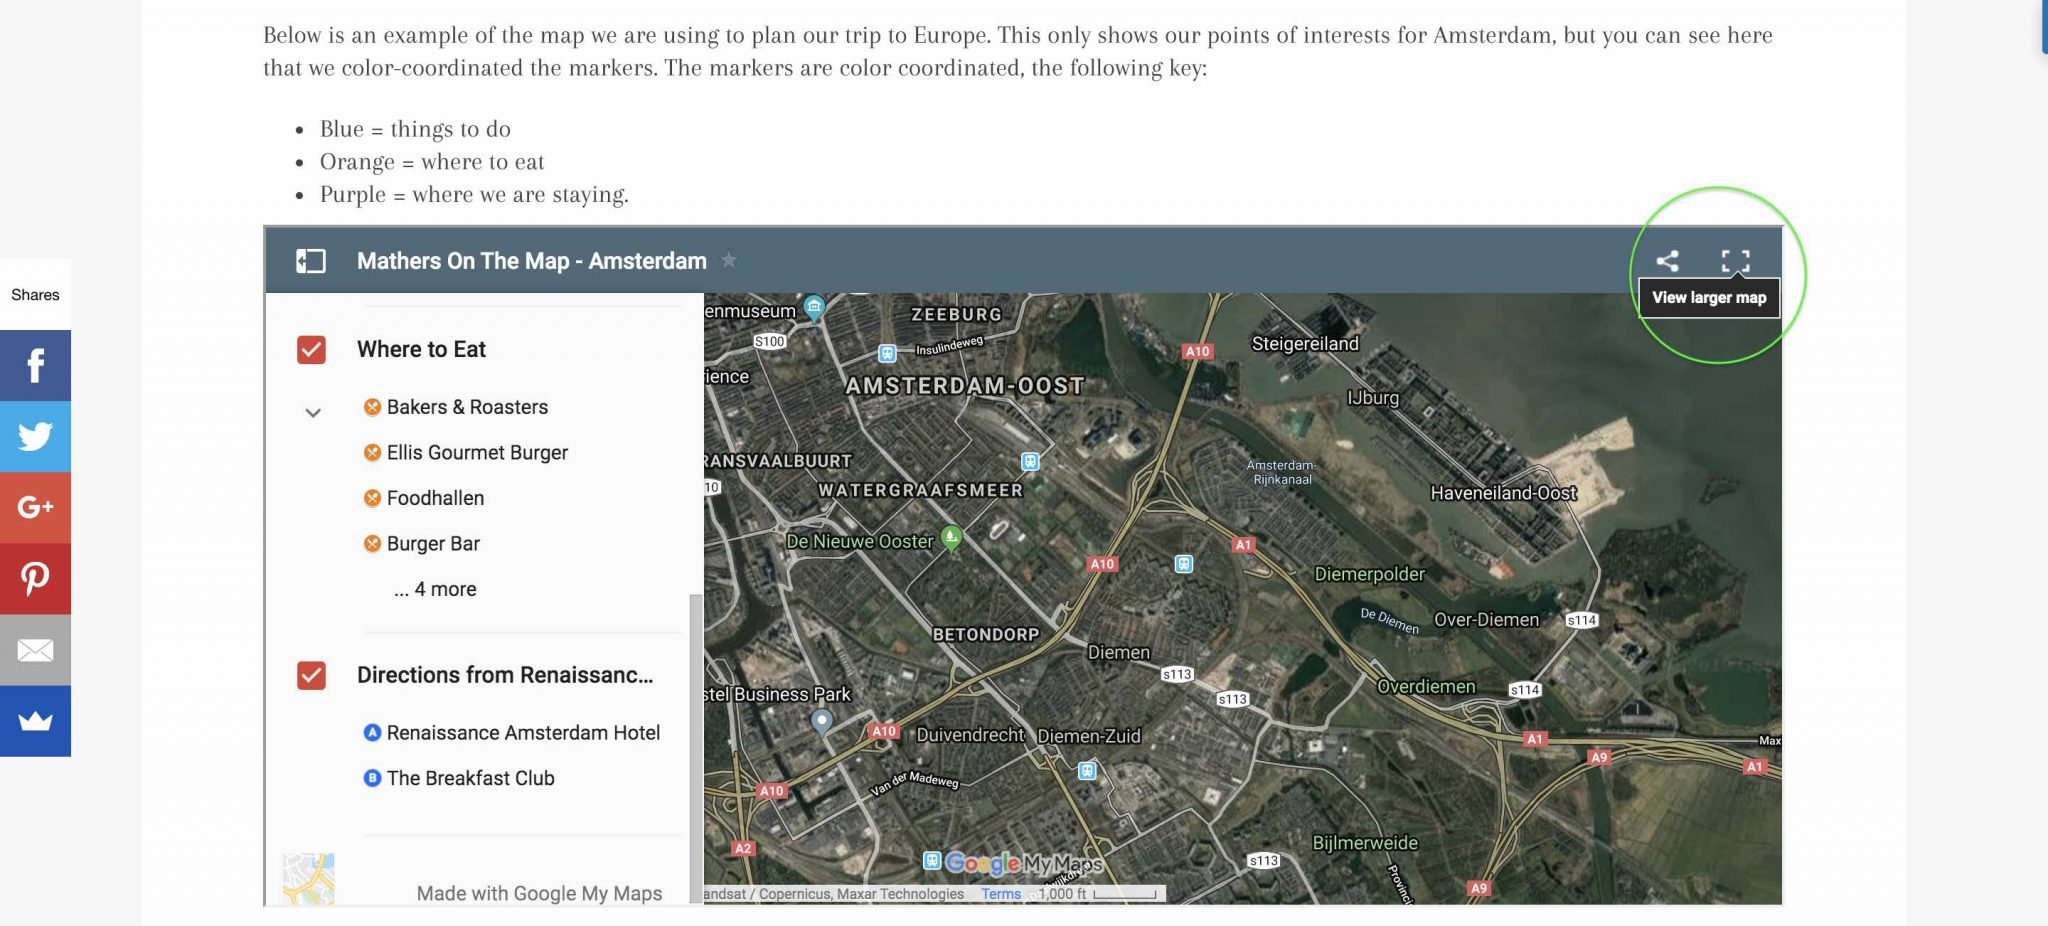 How to Plan a Trip Using Google My Maps - Mathers on the Map Map My Vacation on map my house, map my fitness, map my money, map my route, map my land, map my drives, map my cruise, map my business,